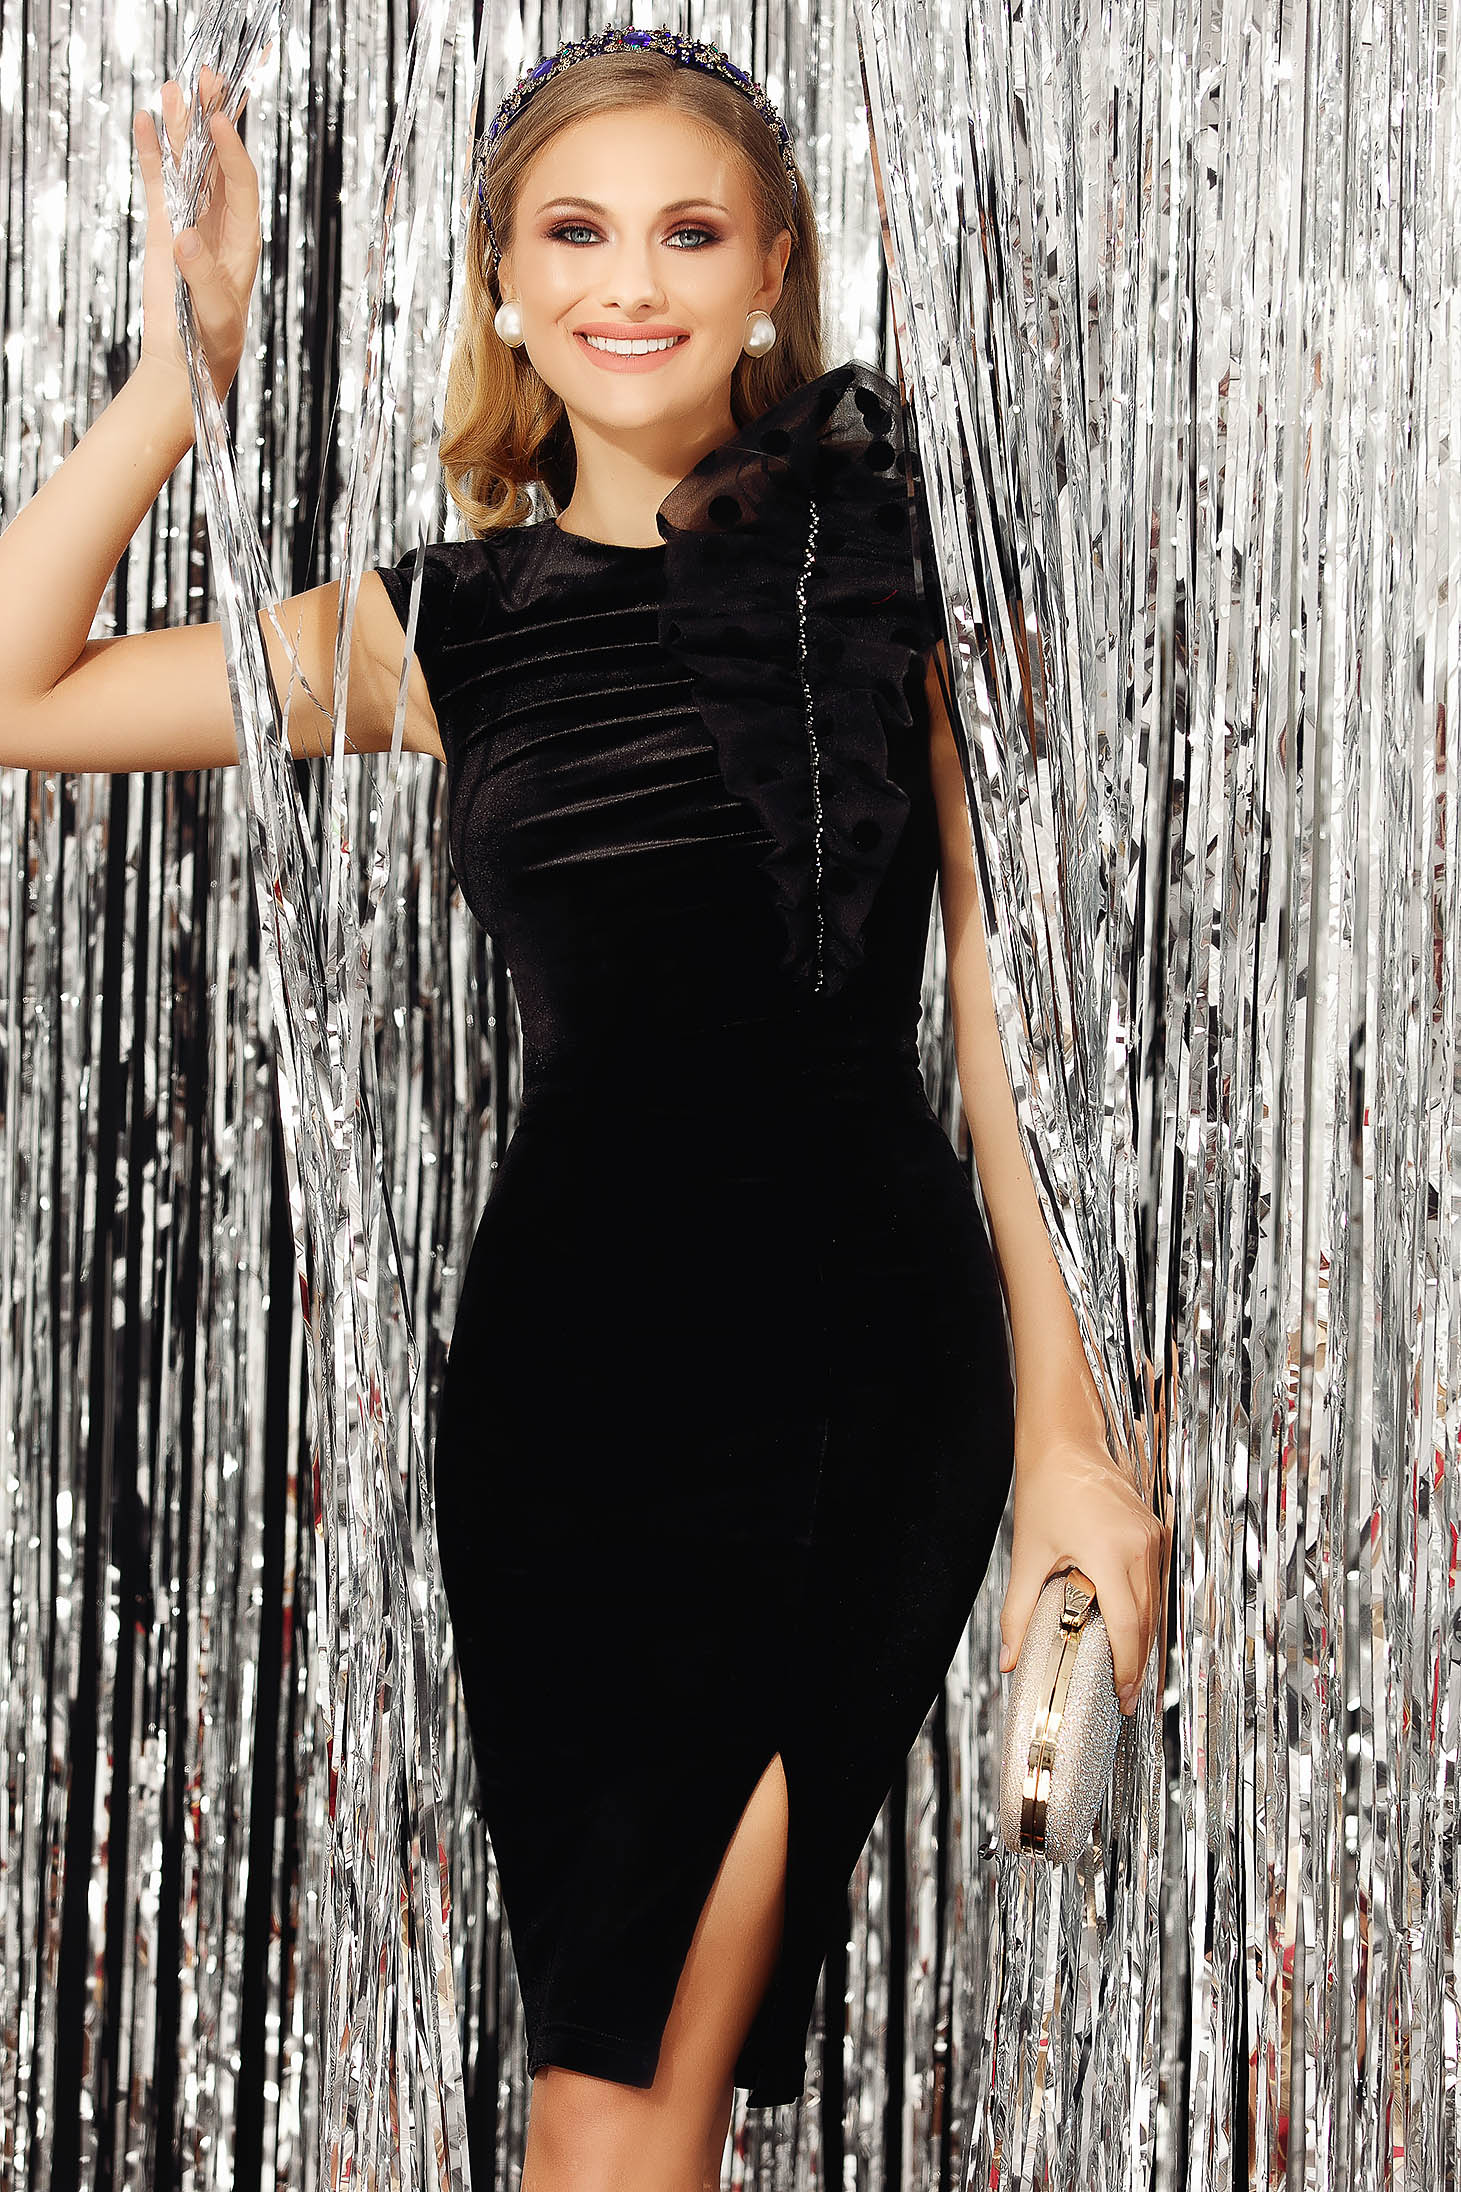 Black dress occasional from velvet slit arched cut sleeveless pencil